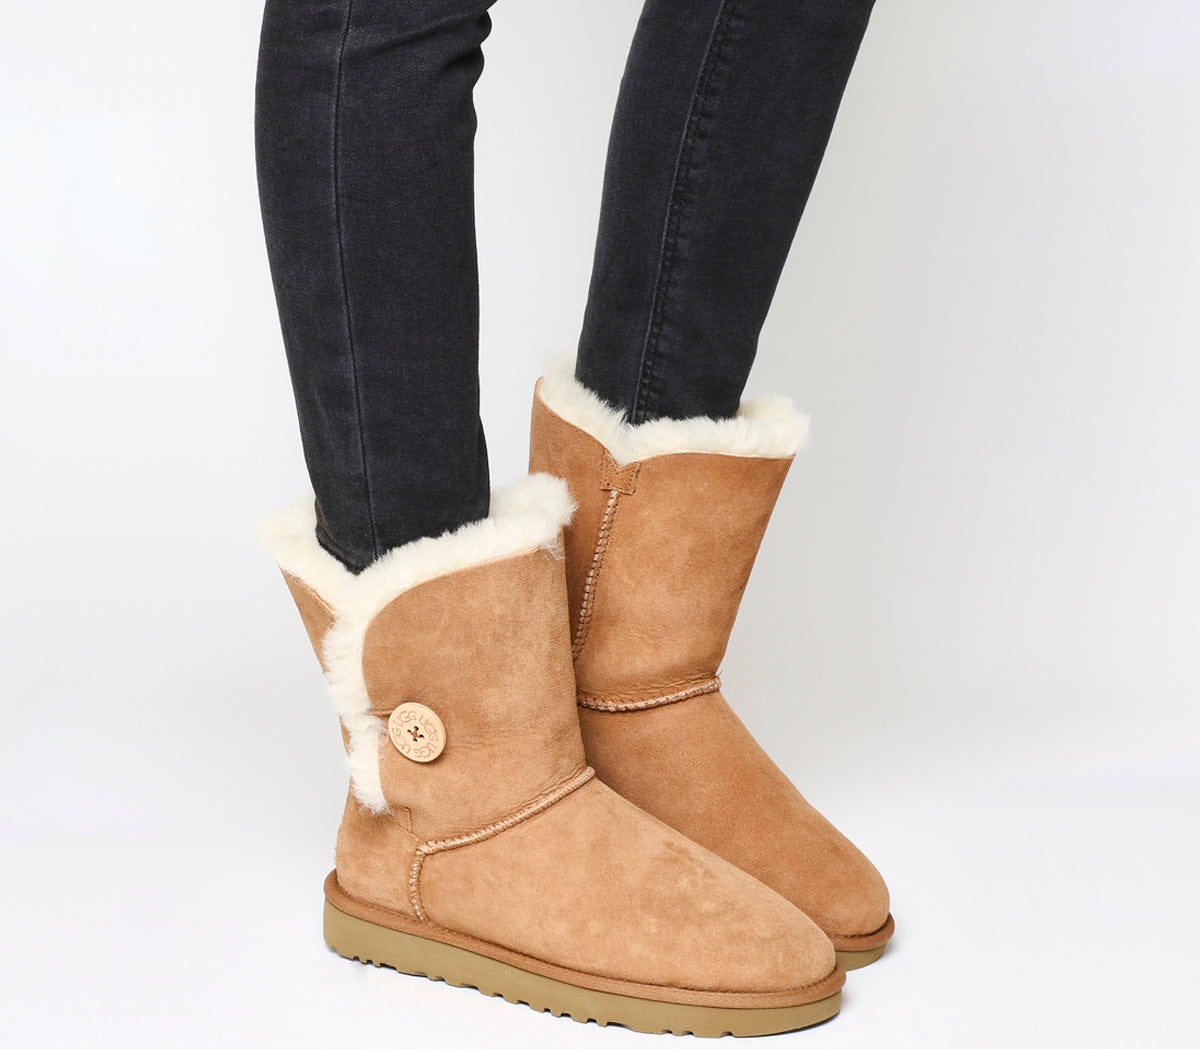 Womens Ugg Bailey Button II Boots Chestnut Suede